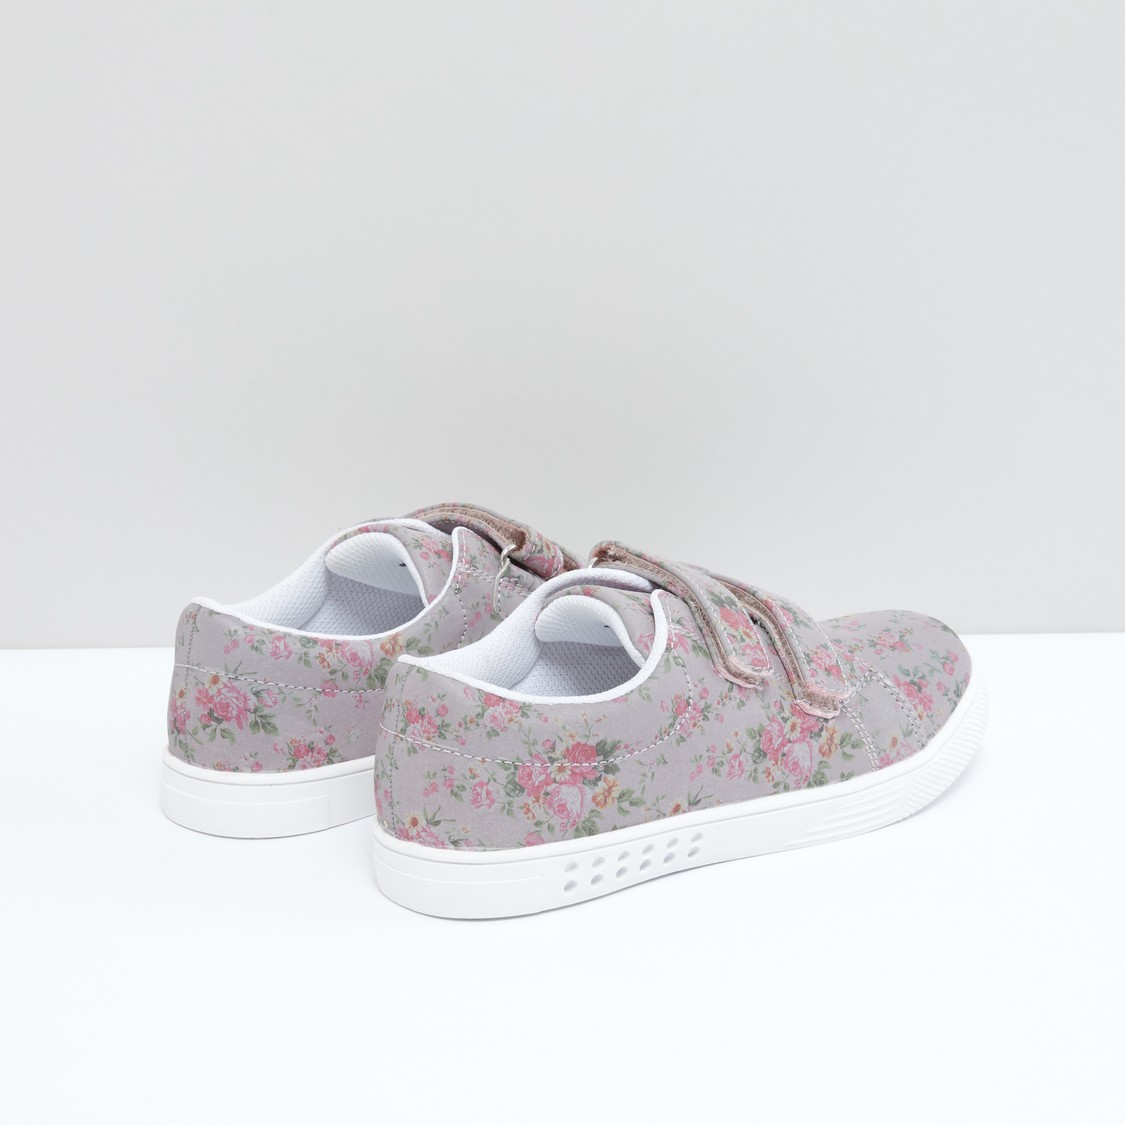 Floral Printed Shoes with Hook and Loop Closure